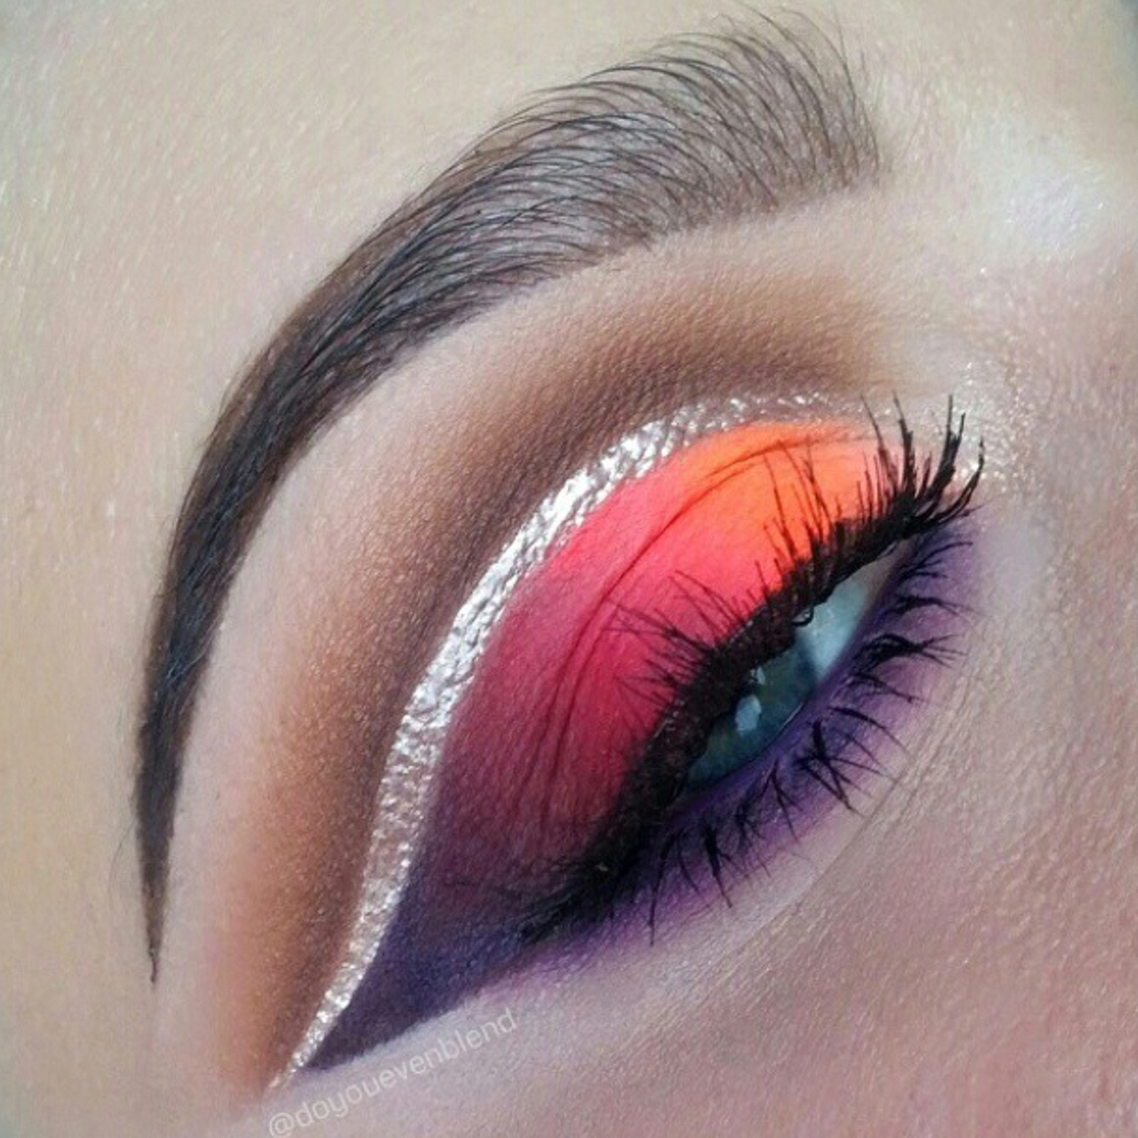 Pin by Stacy Plummer Yost on Eyes in 2020 Colorful